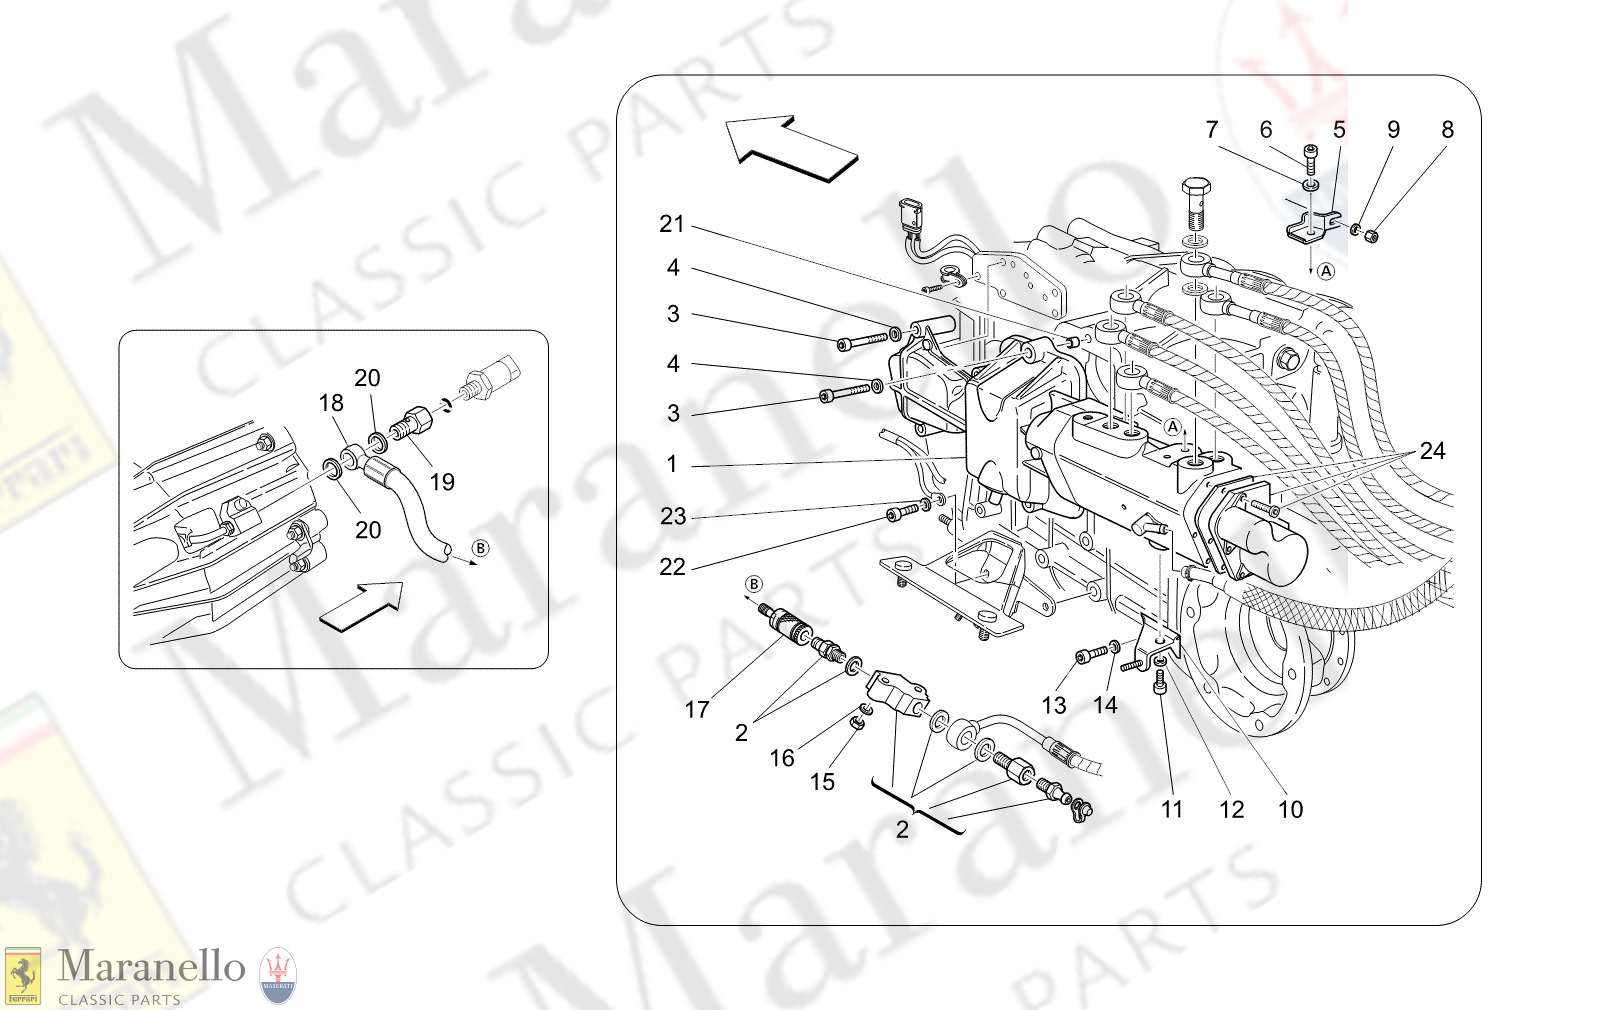 02.01 - 1 - 0201 - 1 Actuation Hydraulic Parts For F1 Gearbox